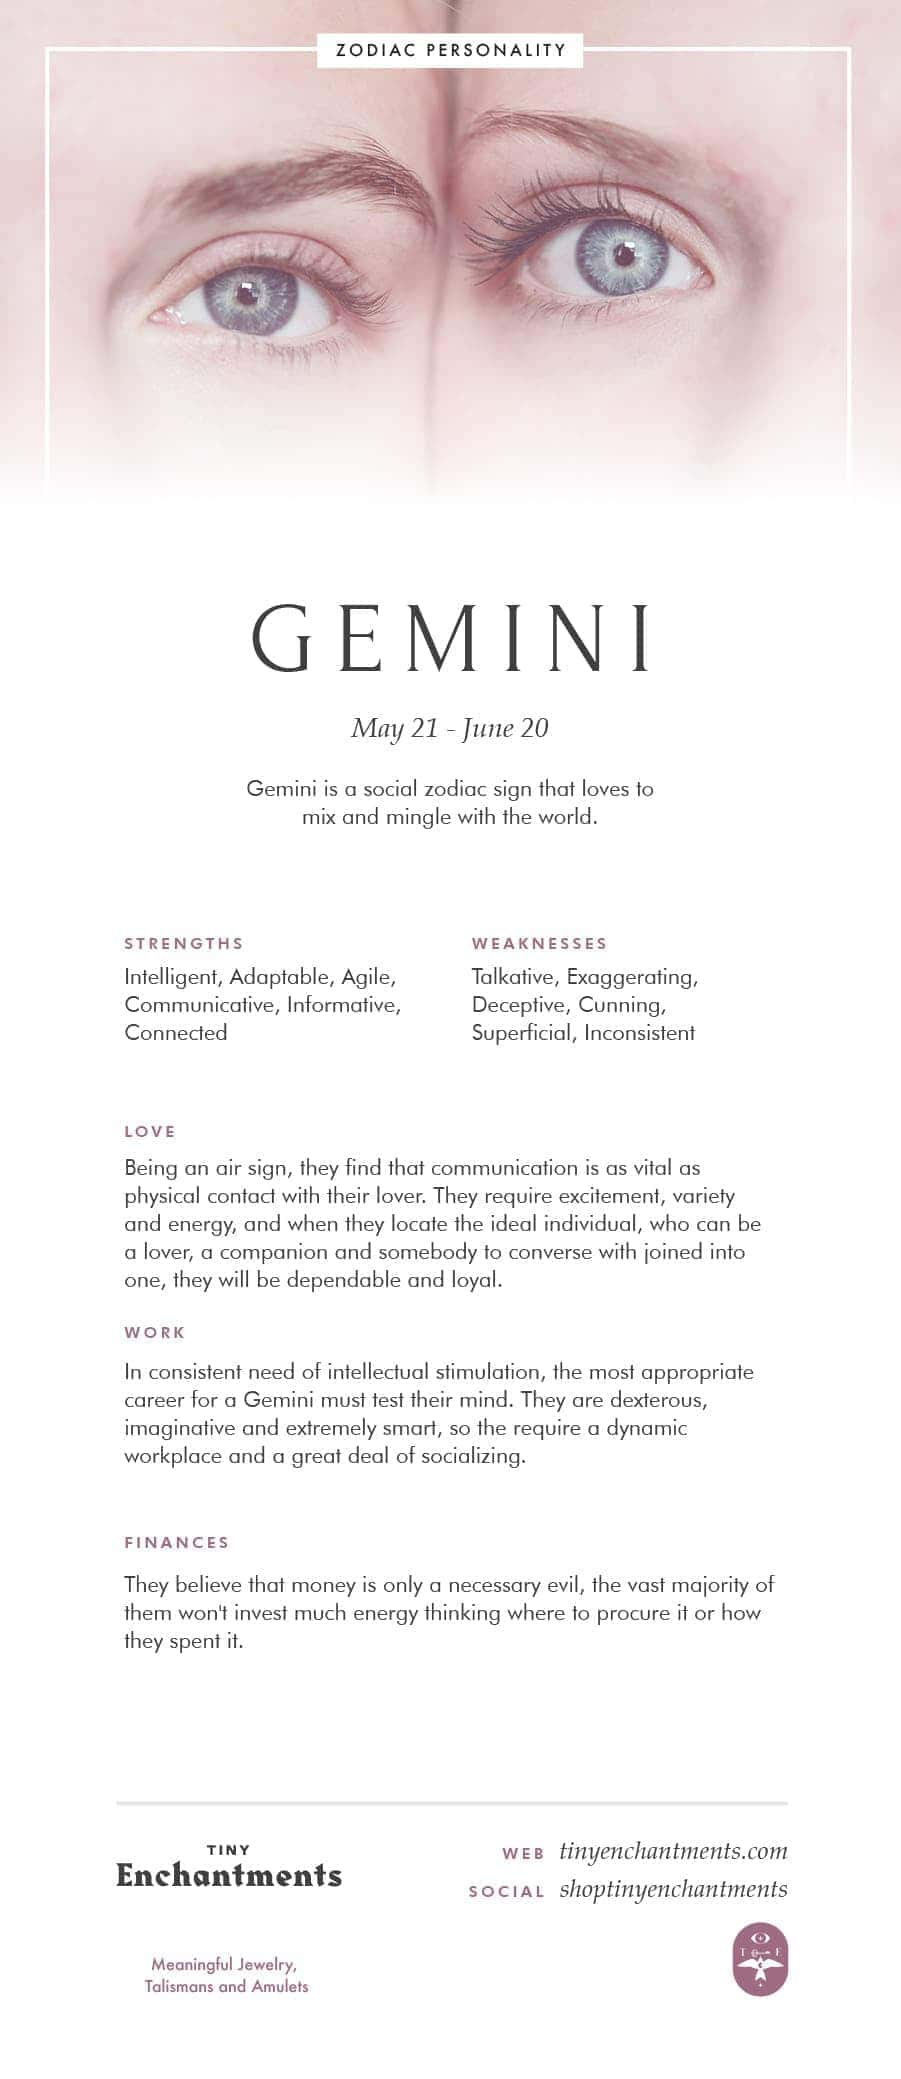 Gemini Zodiac Sign Correspondences - Gemini Personality, Gemini Symbol, Gemini Mythology and Gemini Meaning